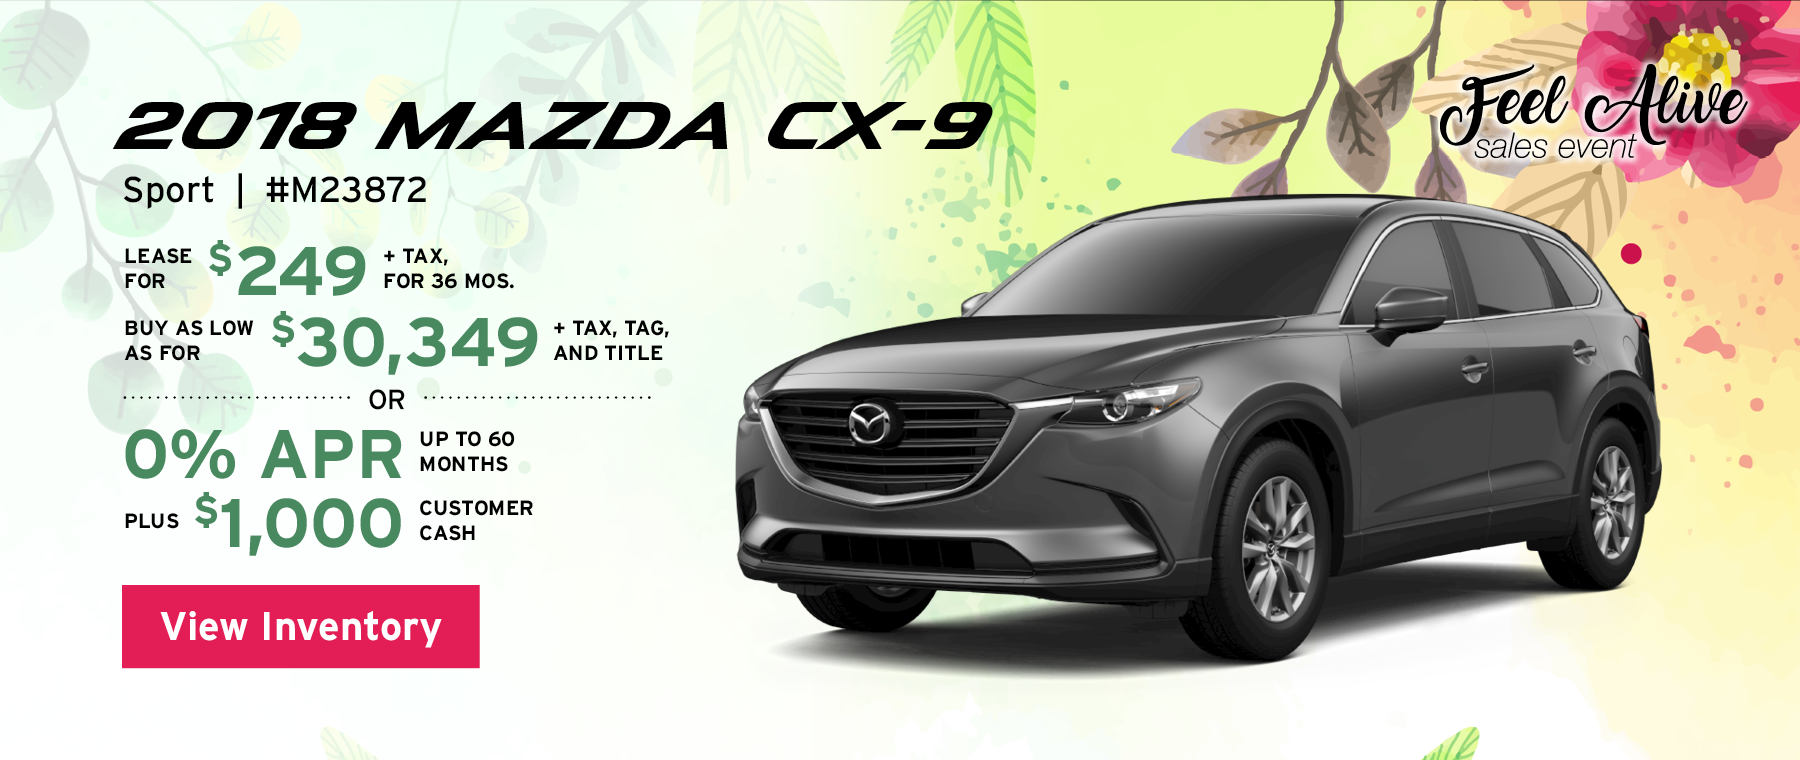 Lease the 2018 Mazda CX-9 Sport stock#M23872 for $249 for 36 months, plus tax. Buy as low for $30,349, plus tax, tag, and title, or 0% APR up to 60 months, plus $1,000 customer cash. View inventory.